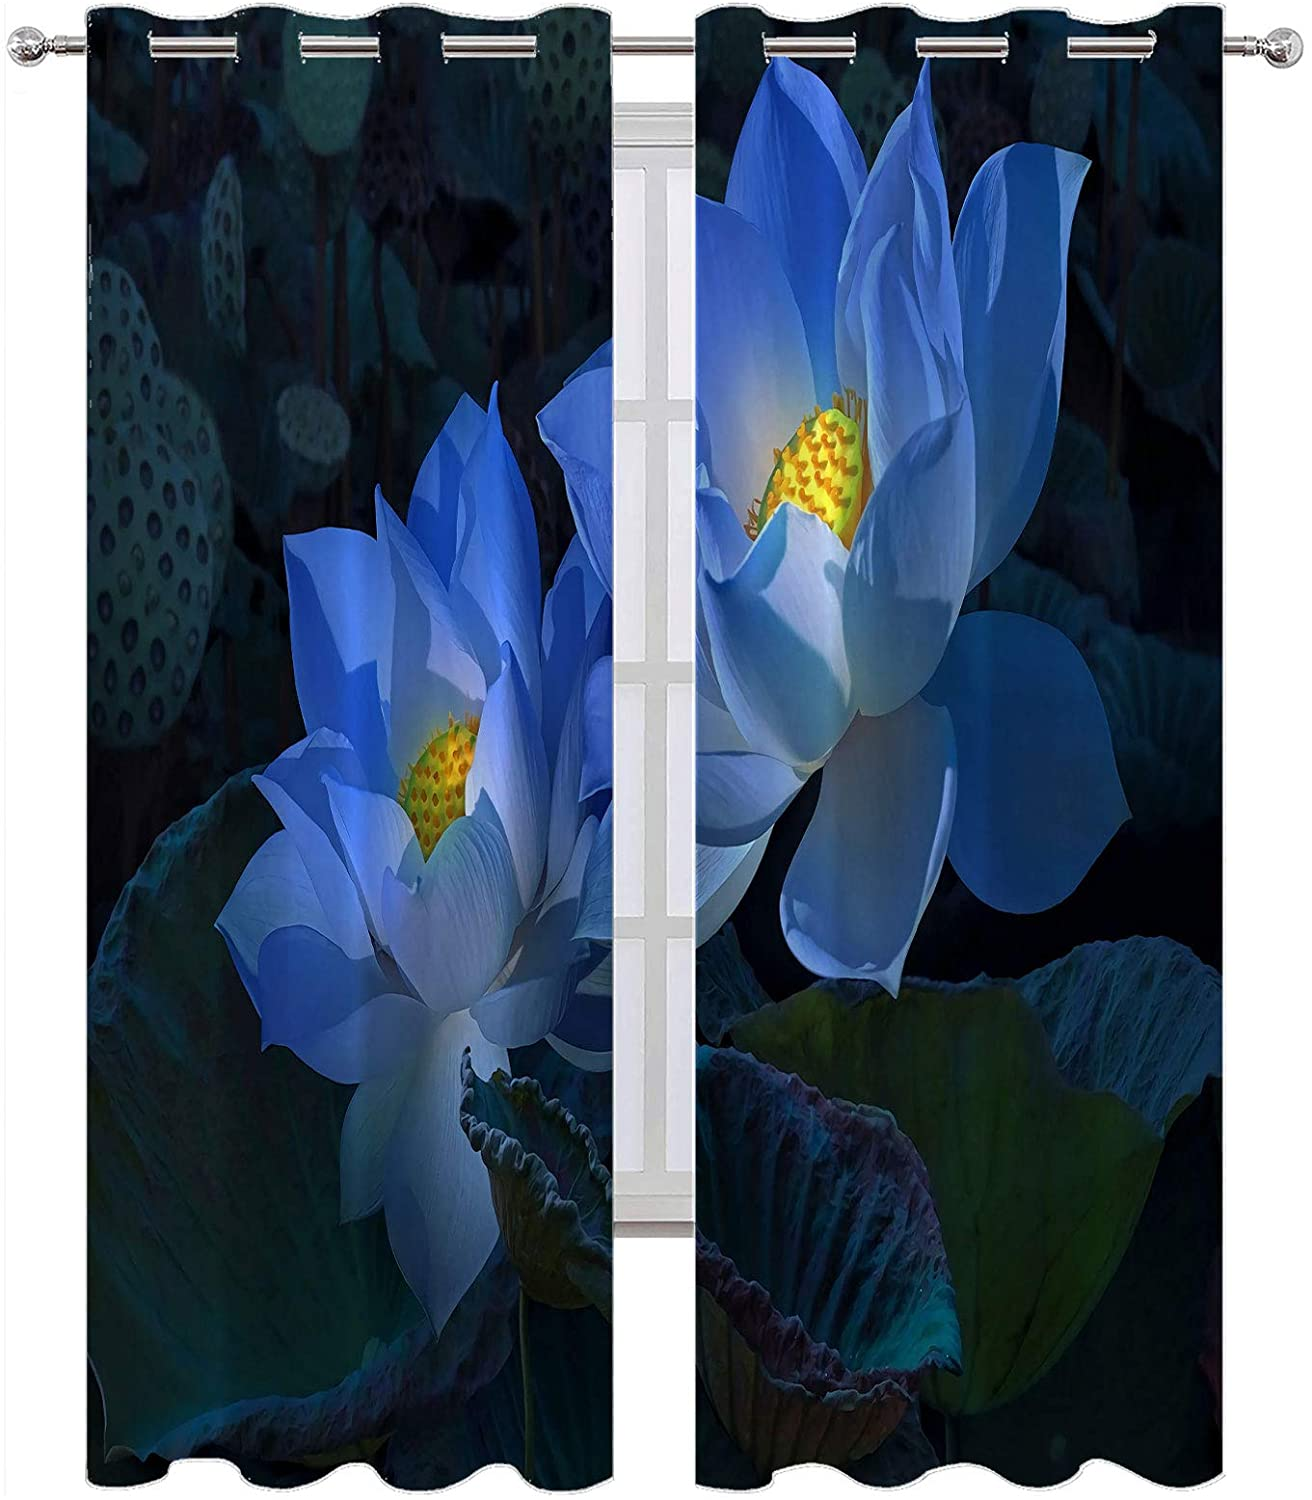 SSKJTC Blackout Window Curtains/Drapes Flowers Blue Night Lotus Blackout Curtains for Kids Room W63 x L45